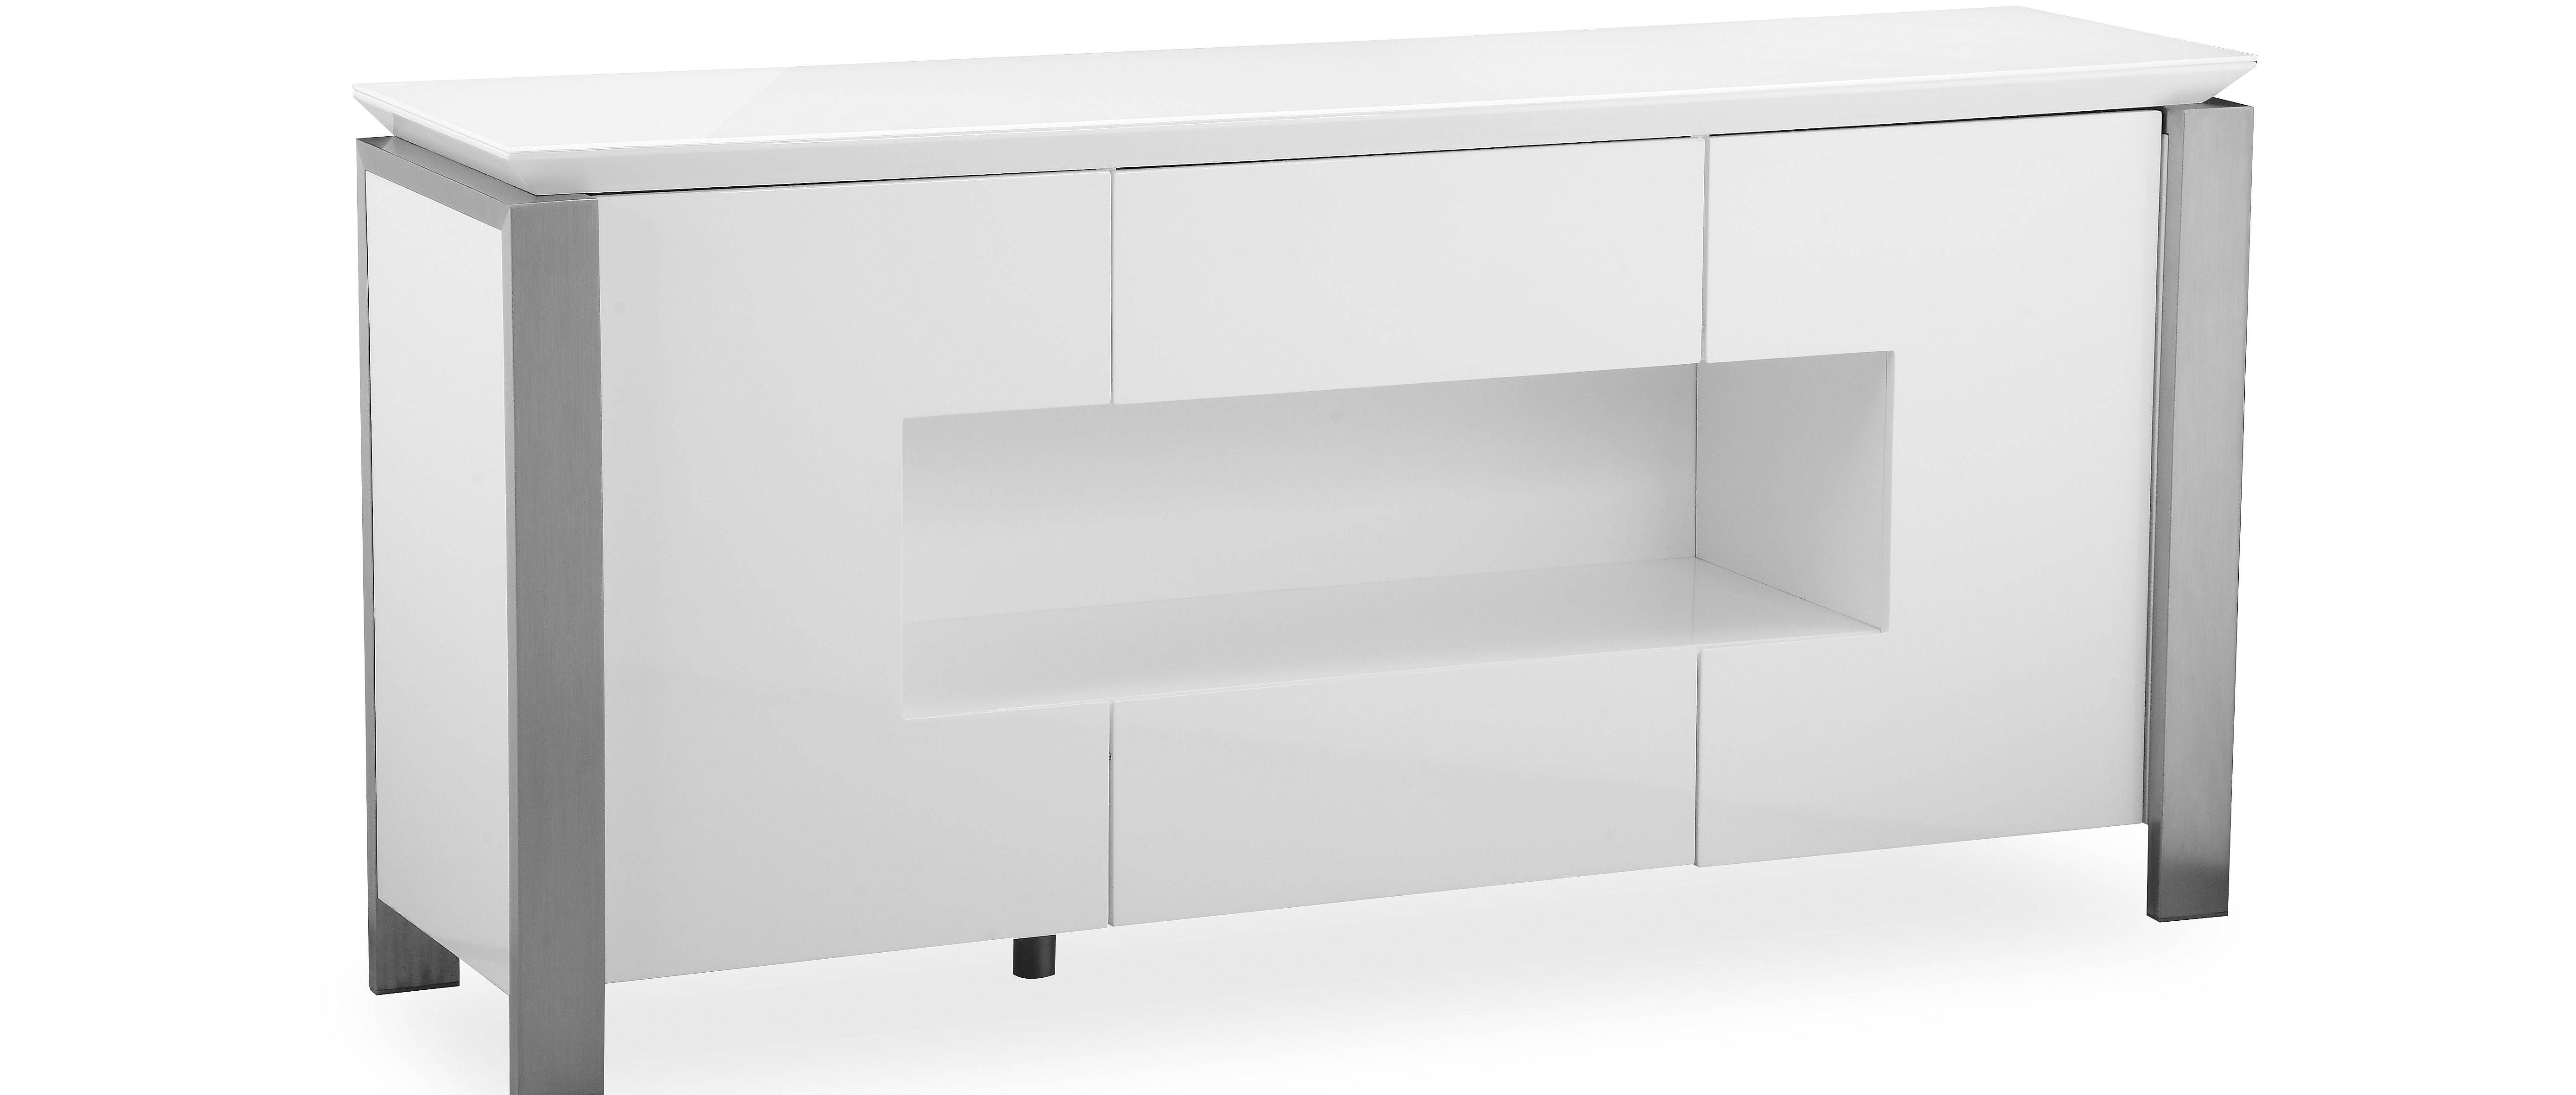 Tribeca - L.e.d. Display Sideboard - White High Gloss throughout White High Gloss Sideboards (Image 29 of 30)